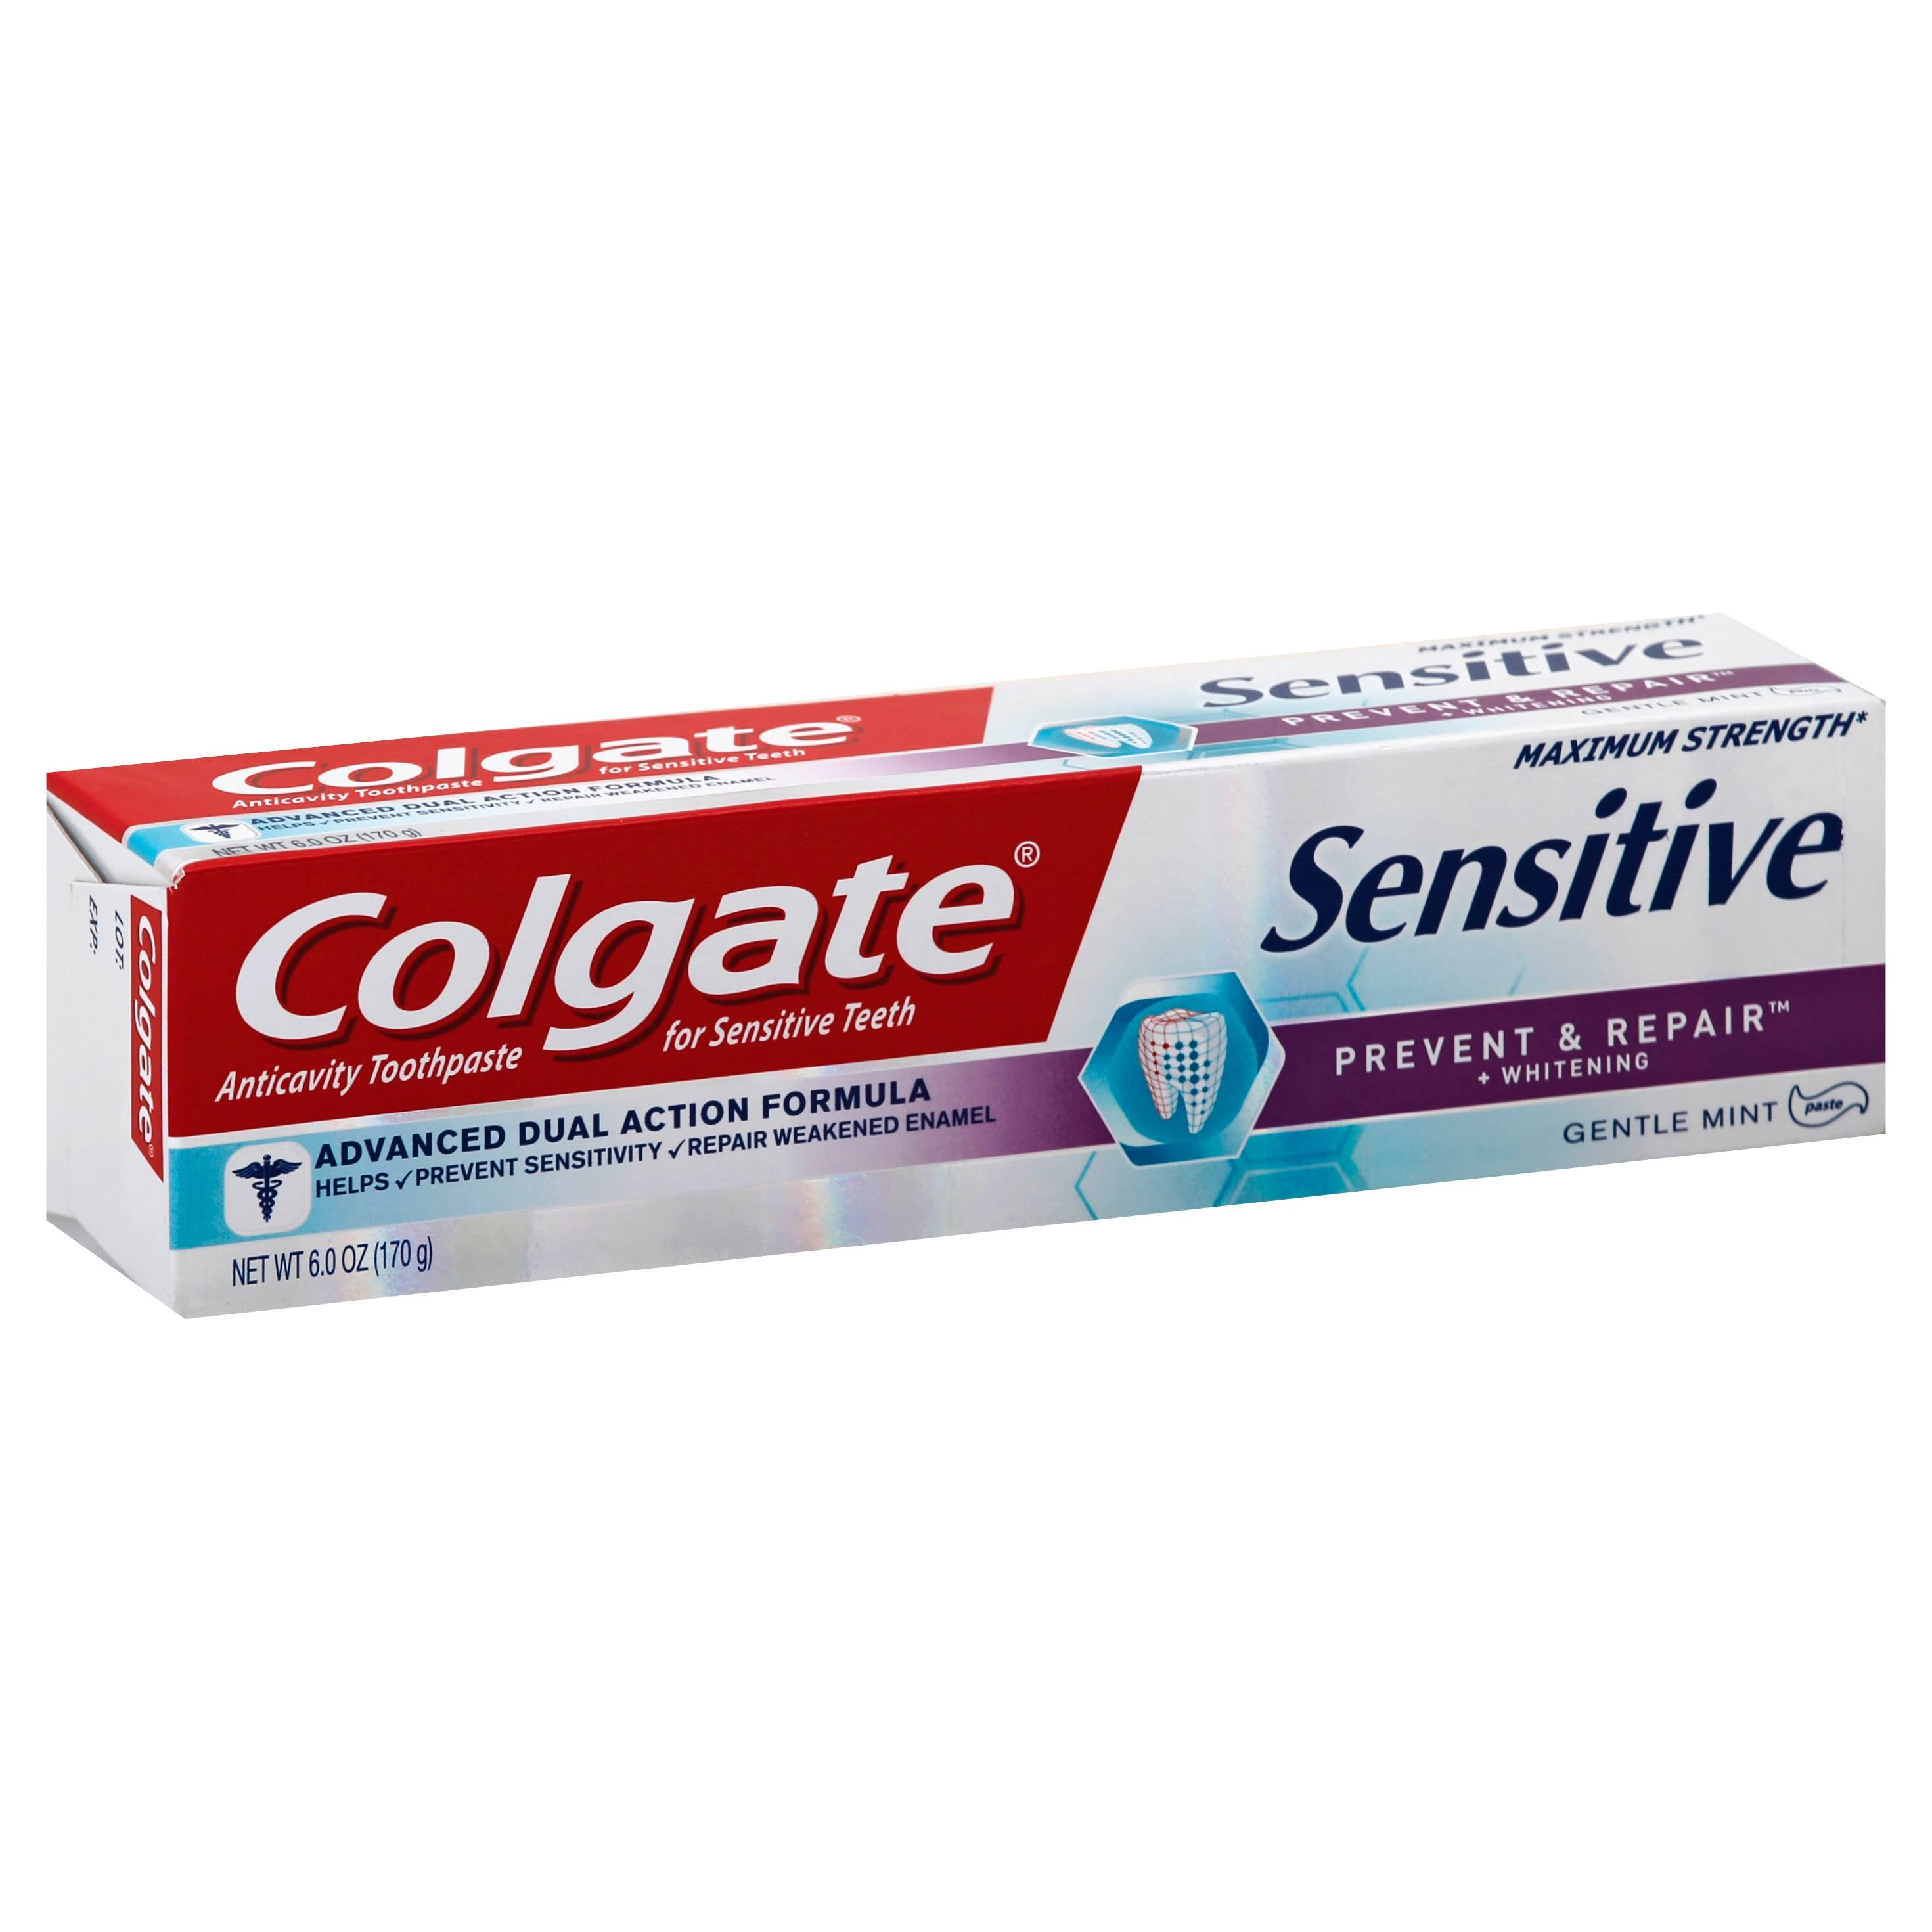 Colgate Sensitive Prevent and Repair Toothpaste